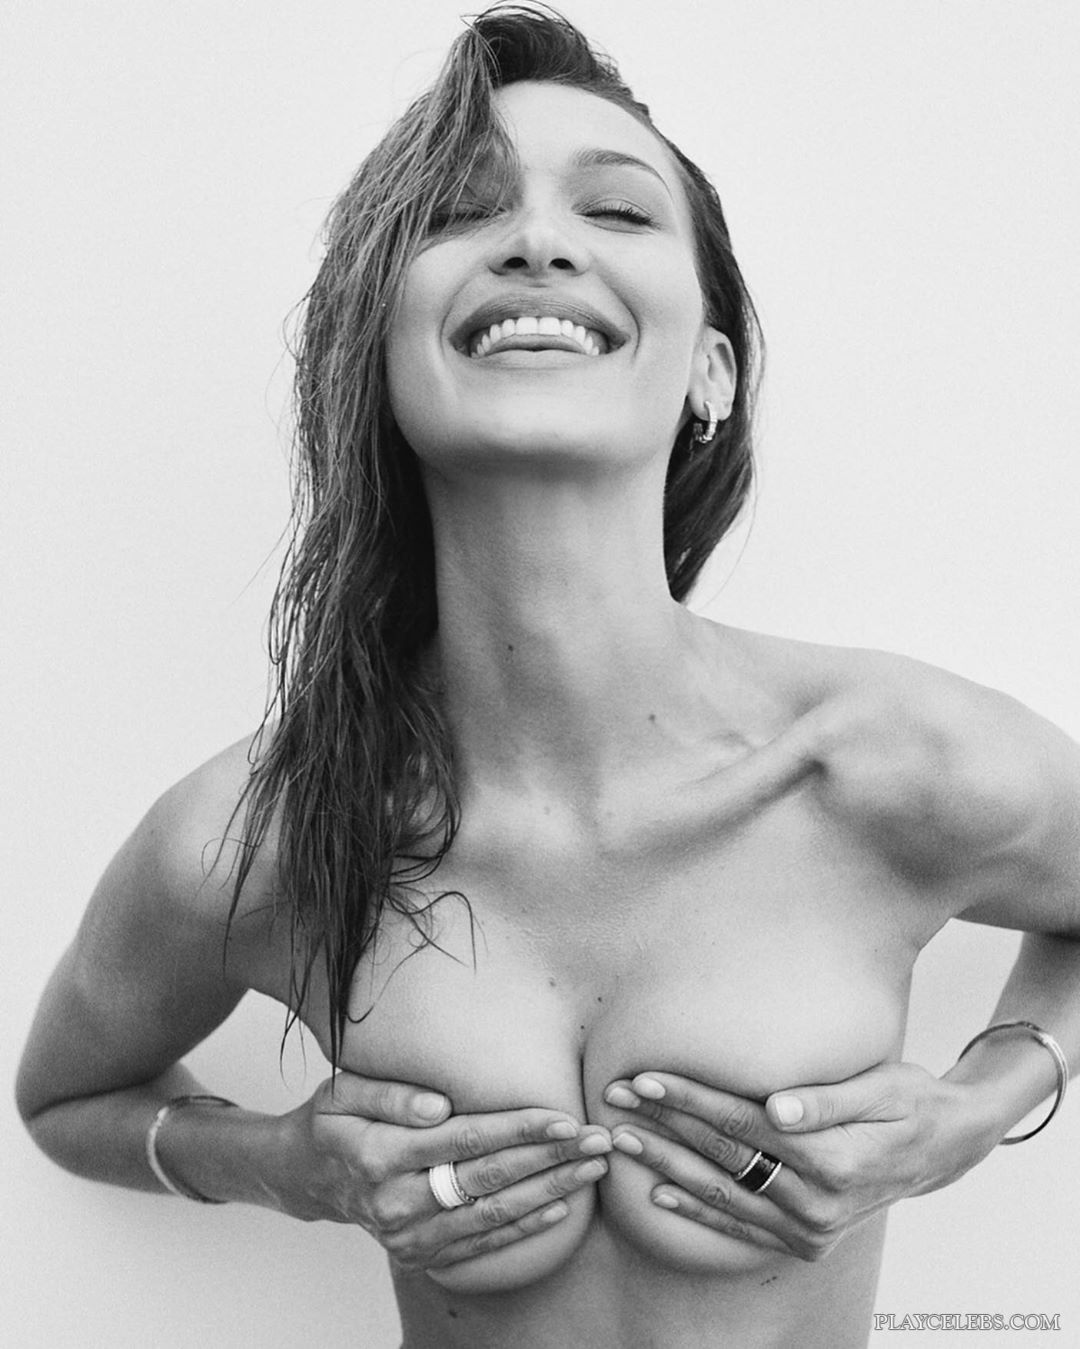 Top Model Bella Hadid Topless And Hot Ass Photos